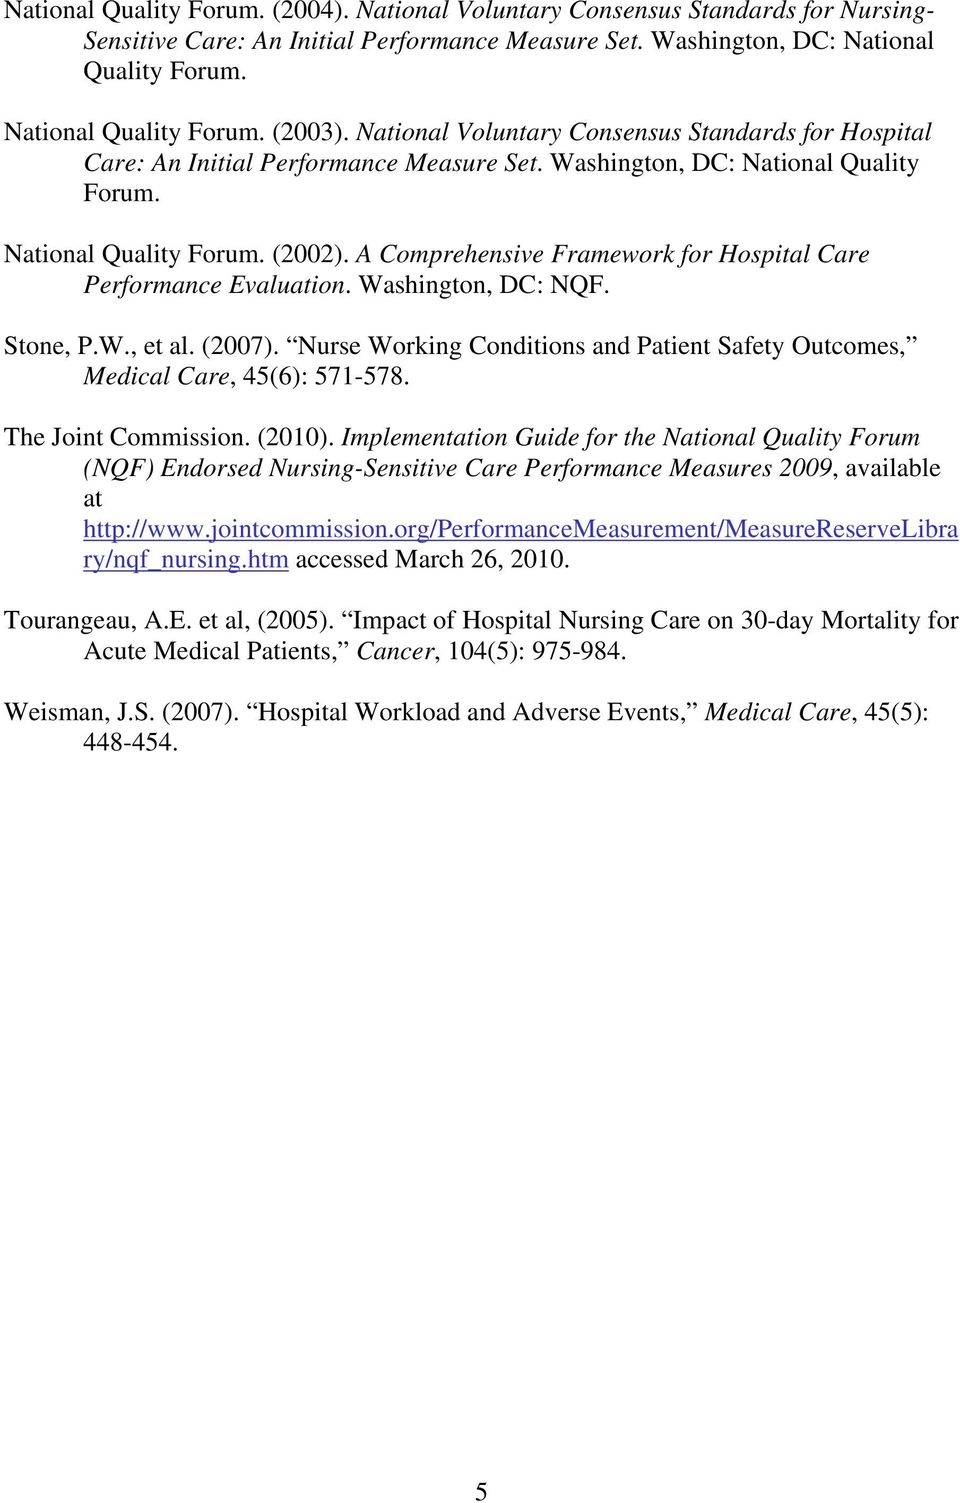 A Comprehensive Framework for Hospital Care Performance Evaluation. Washington, DC: NQF. Stone, P.W., et al. (2007). Nurse Working Conditions and Patient Safety Outcomes, Medical Care, 45(6): 571-578.